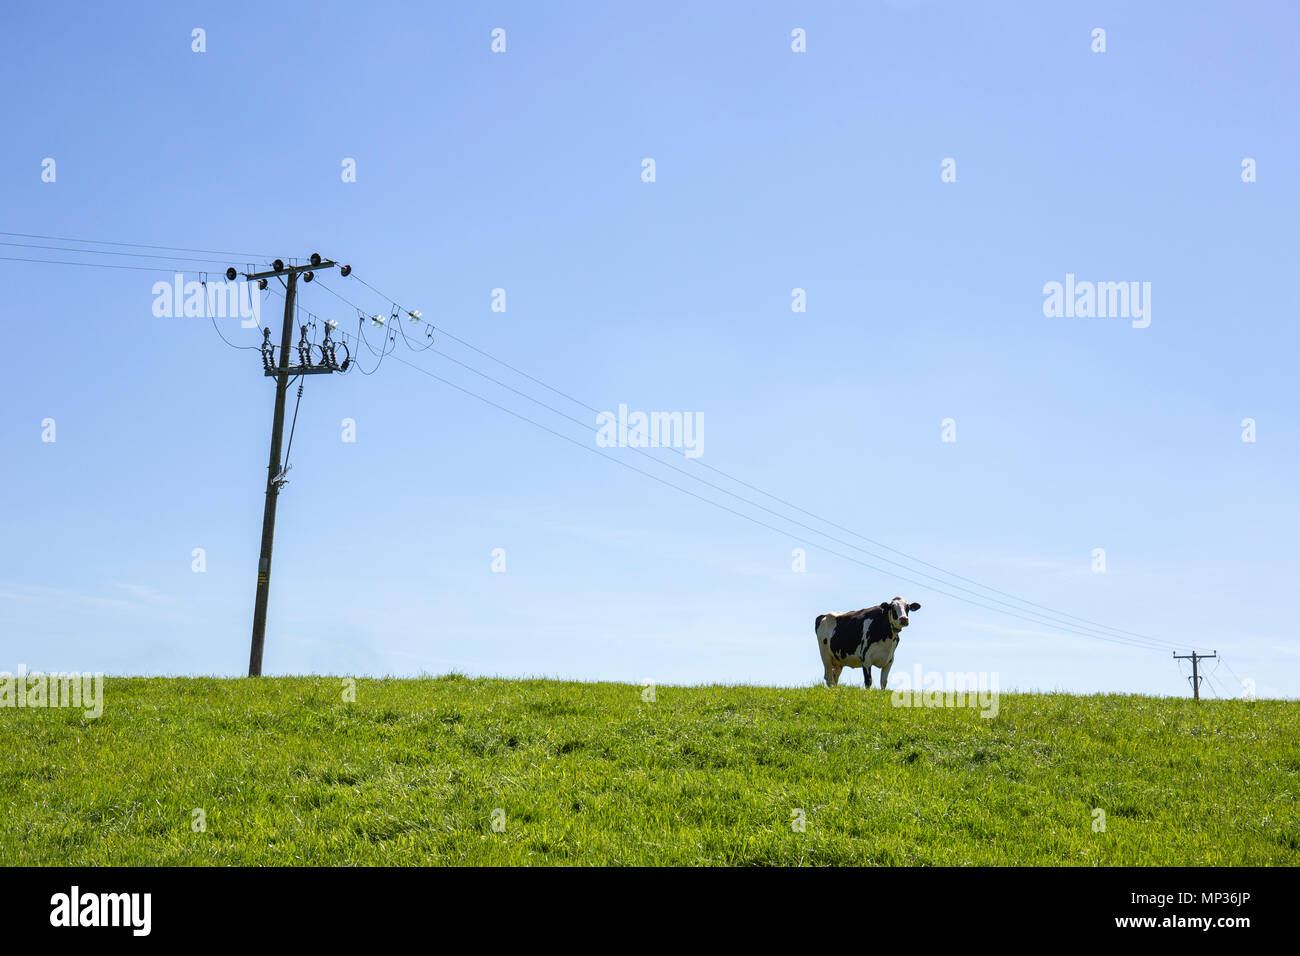 Single cow with power lines in field Stock Photo